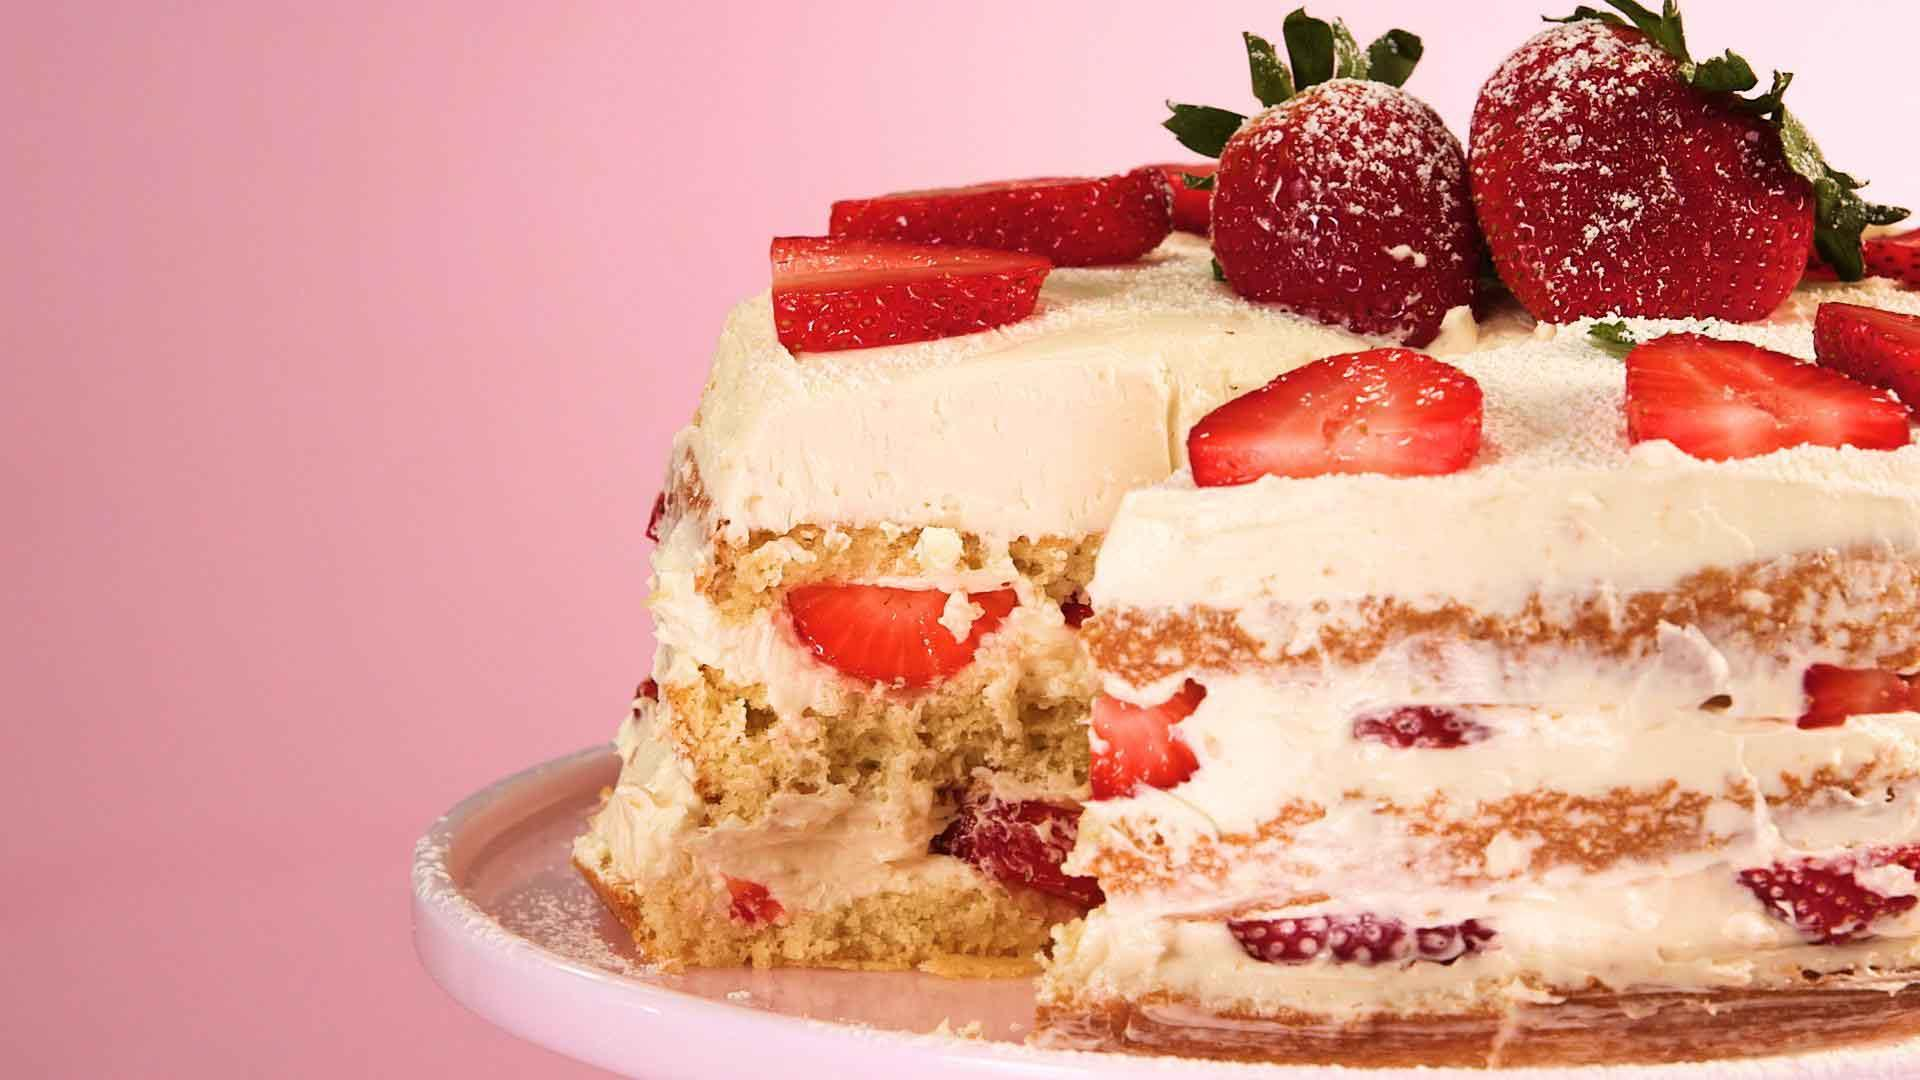 Basic Naked Cake Recipe | MyRecipes